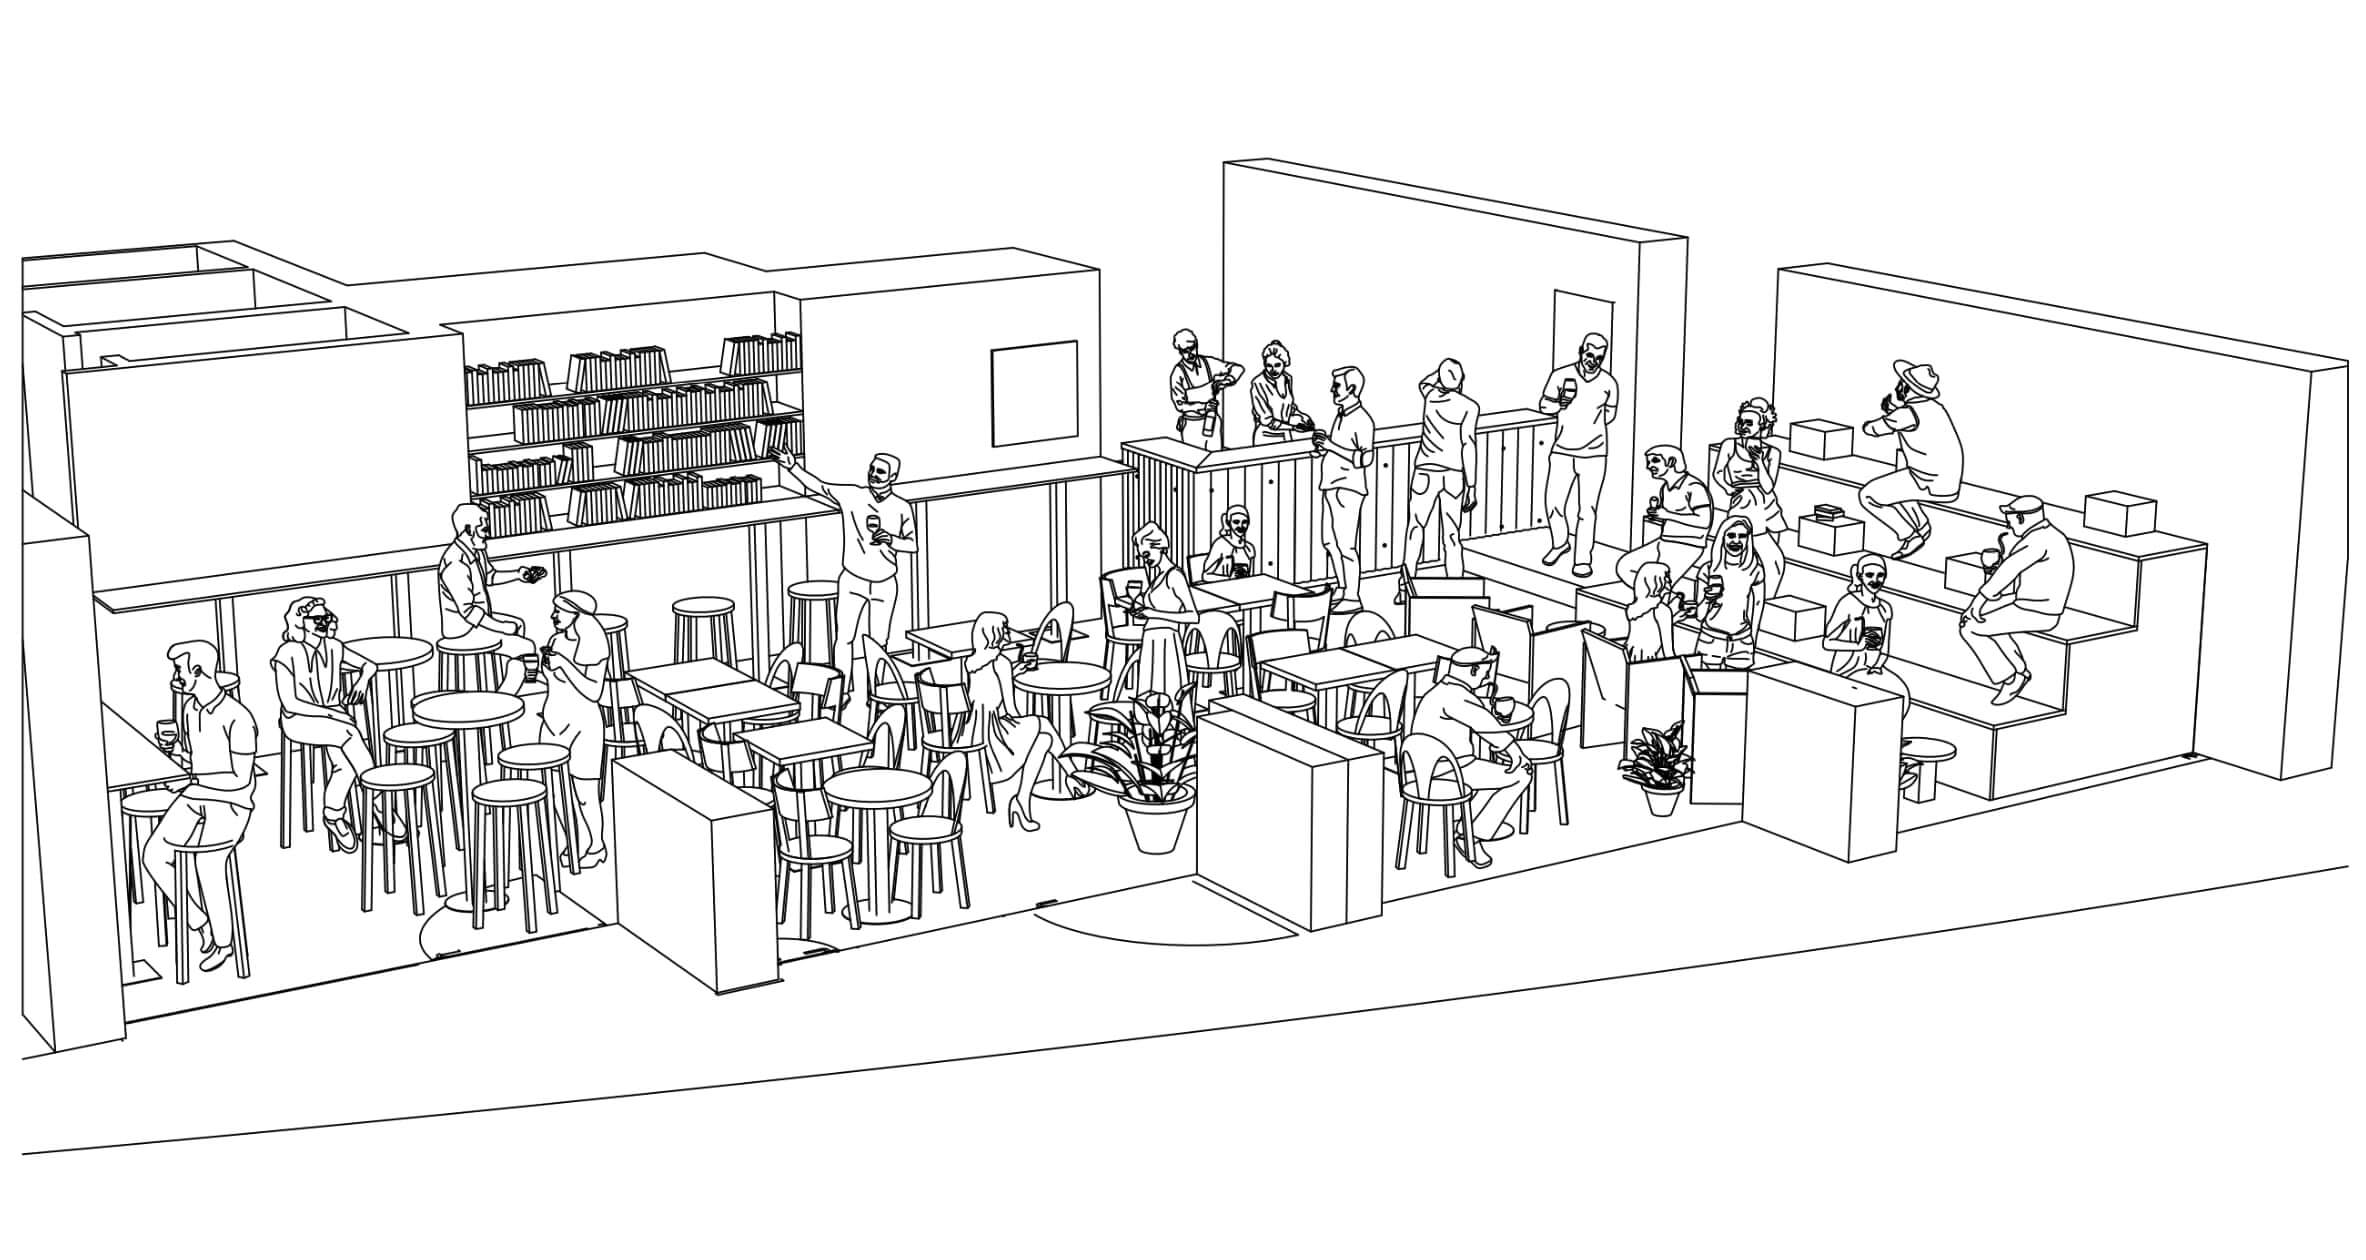 the architecture concept illustration of the Perchoir bar